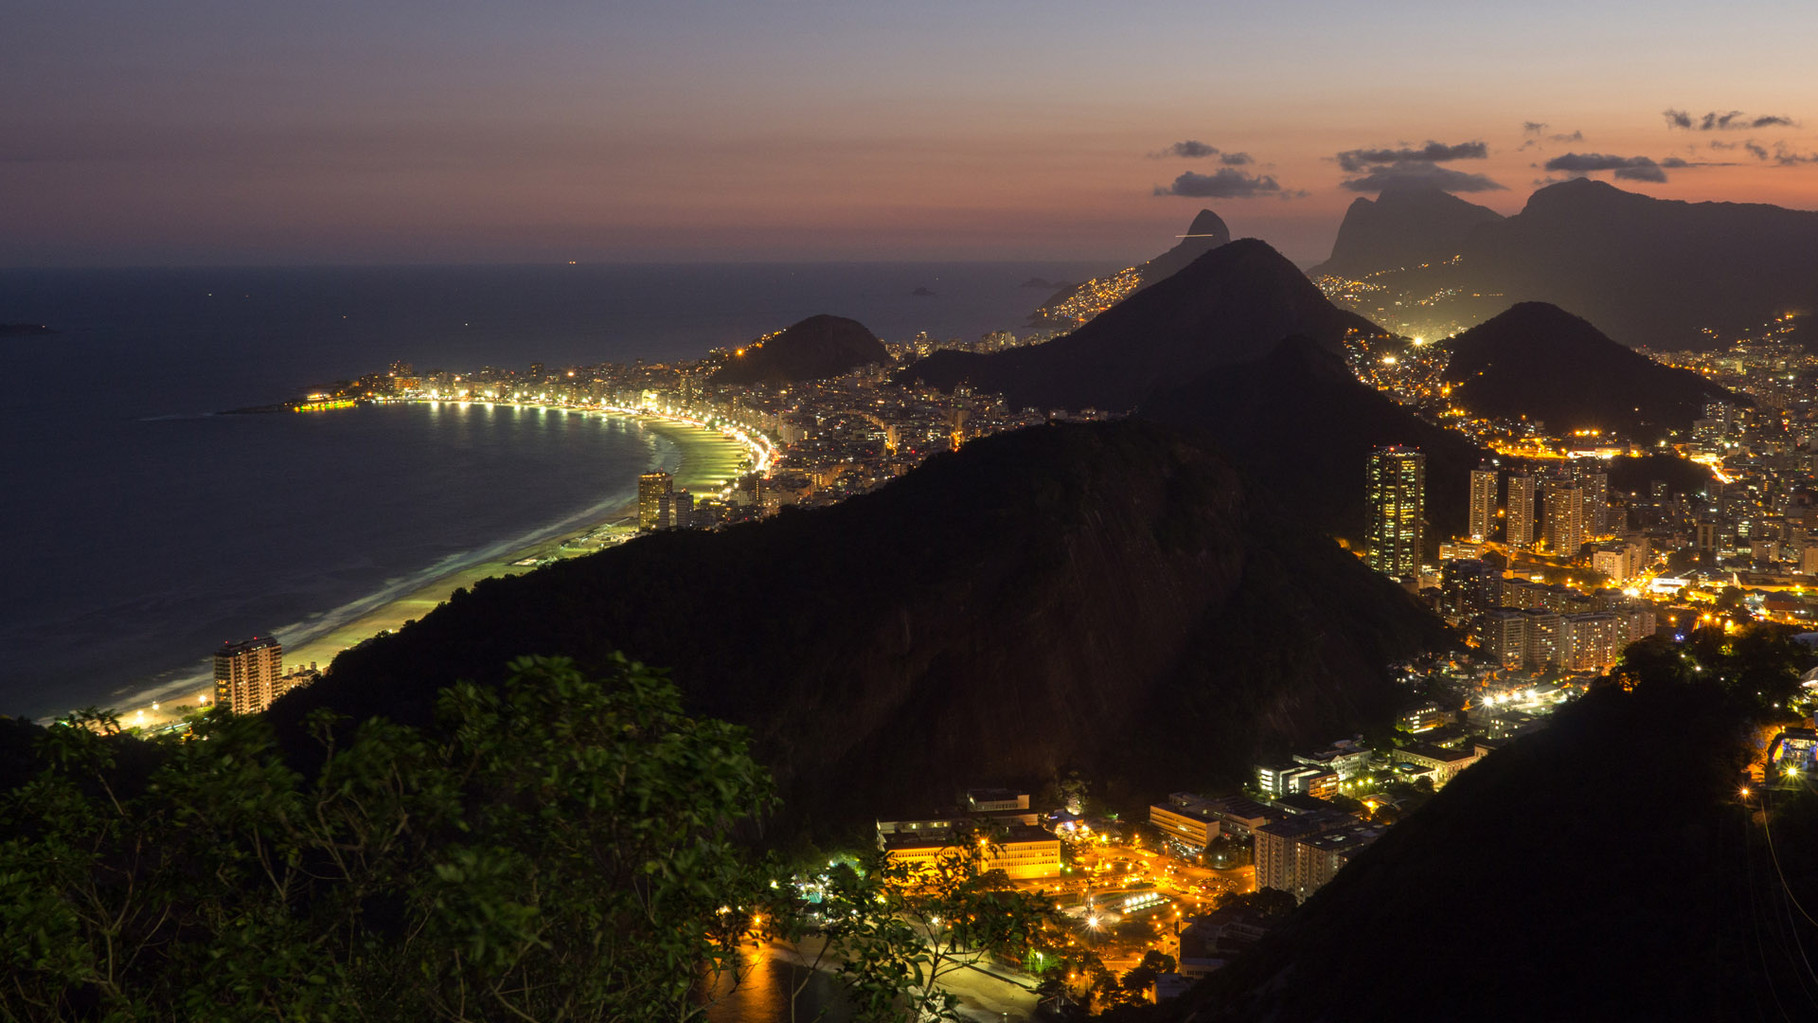 Copacabana by night, panoramic view from Sugarloaf [Brazil, 2014]